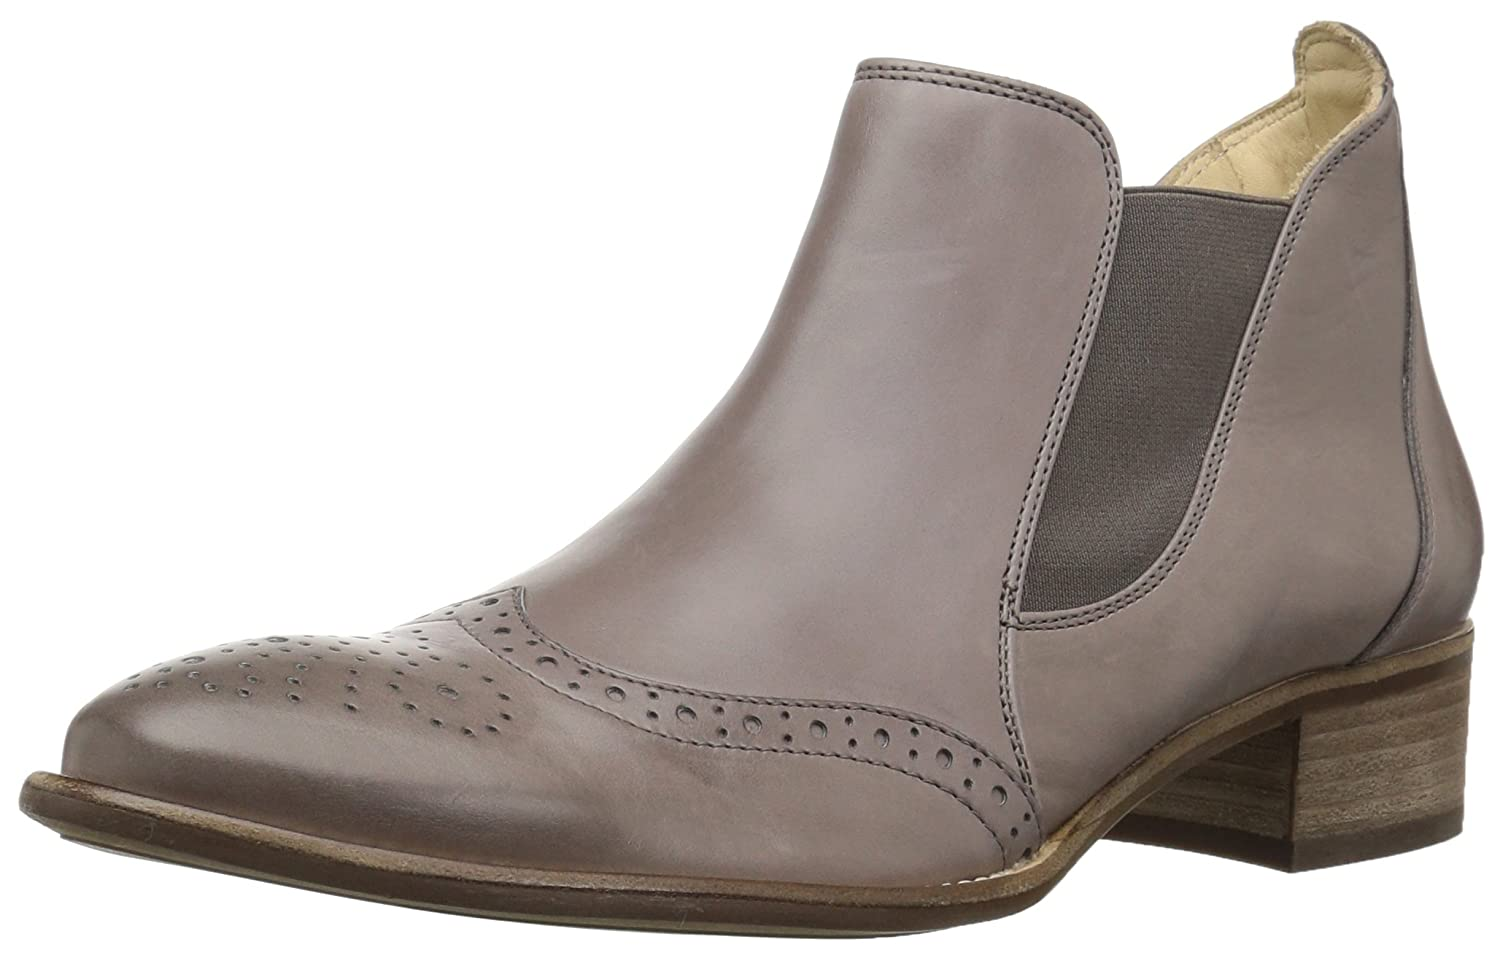 Paul Green Women's Jay Slip-on Ankle Boot B06XPSN2RD 5.5 B(M) US|Truffle Leather